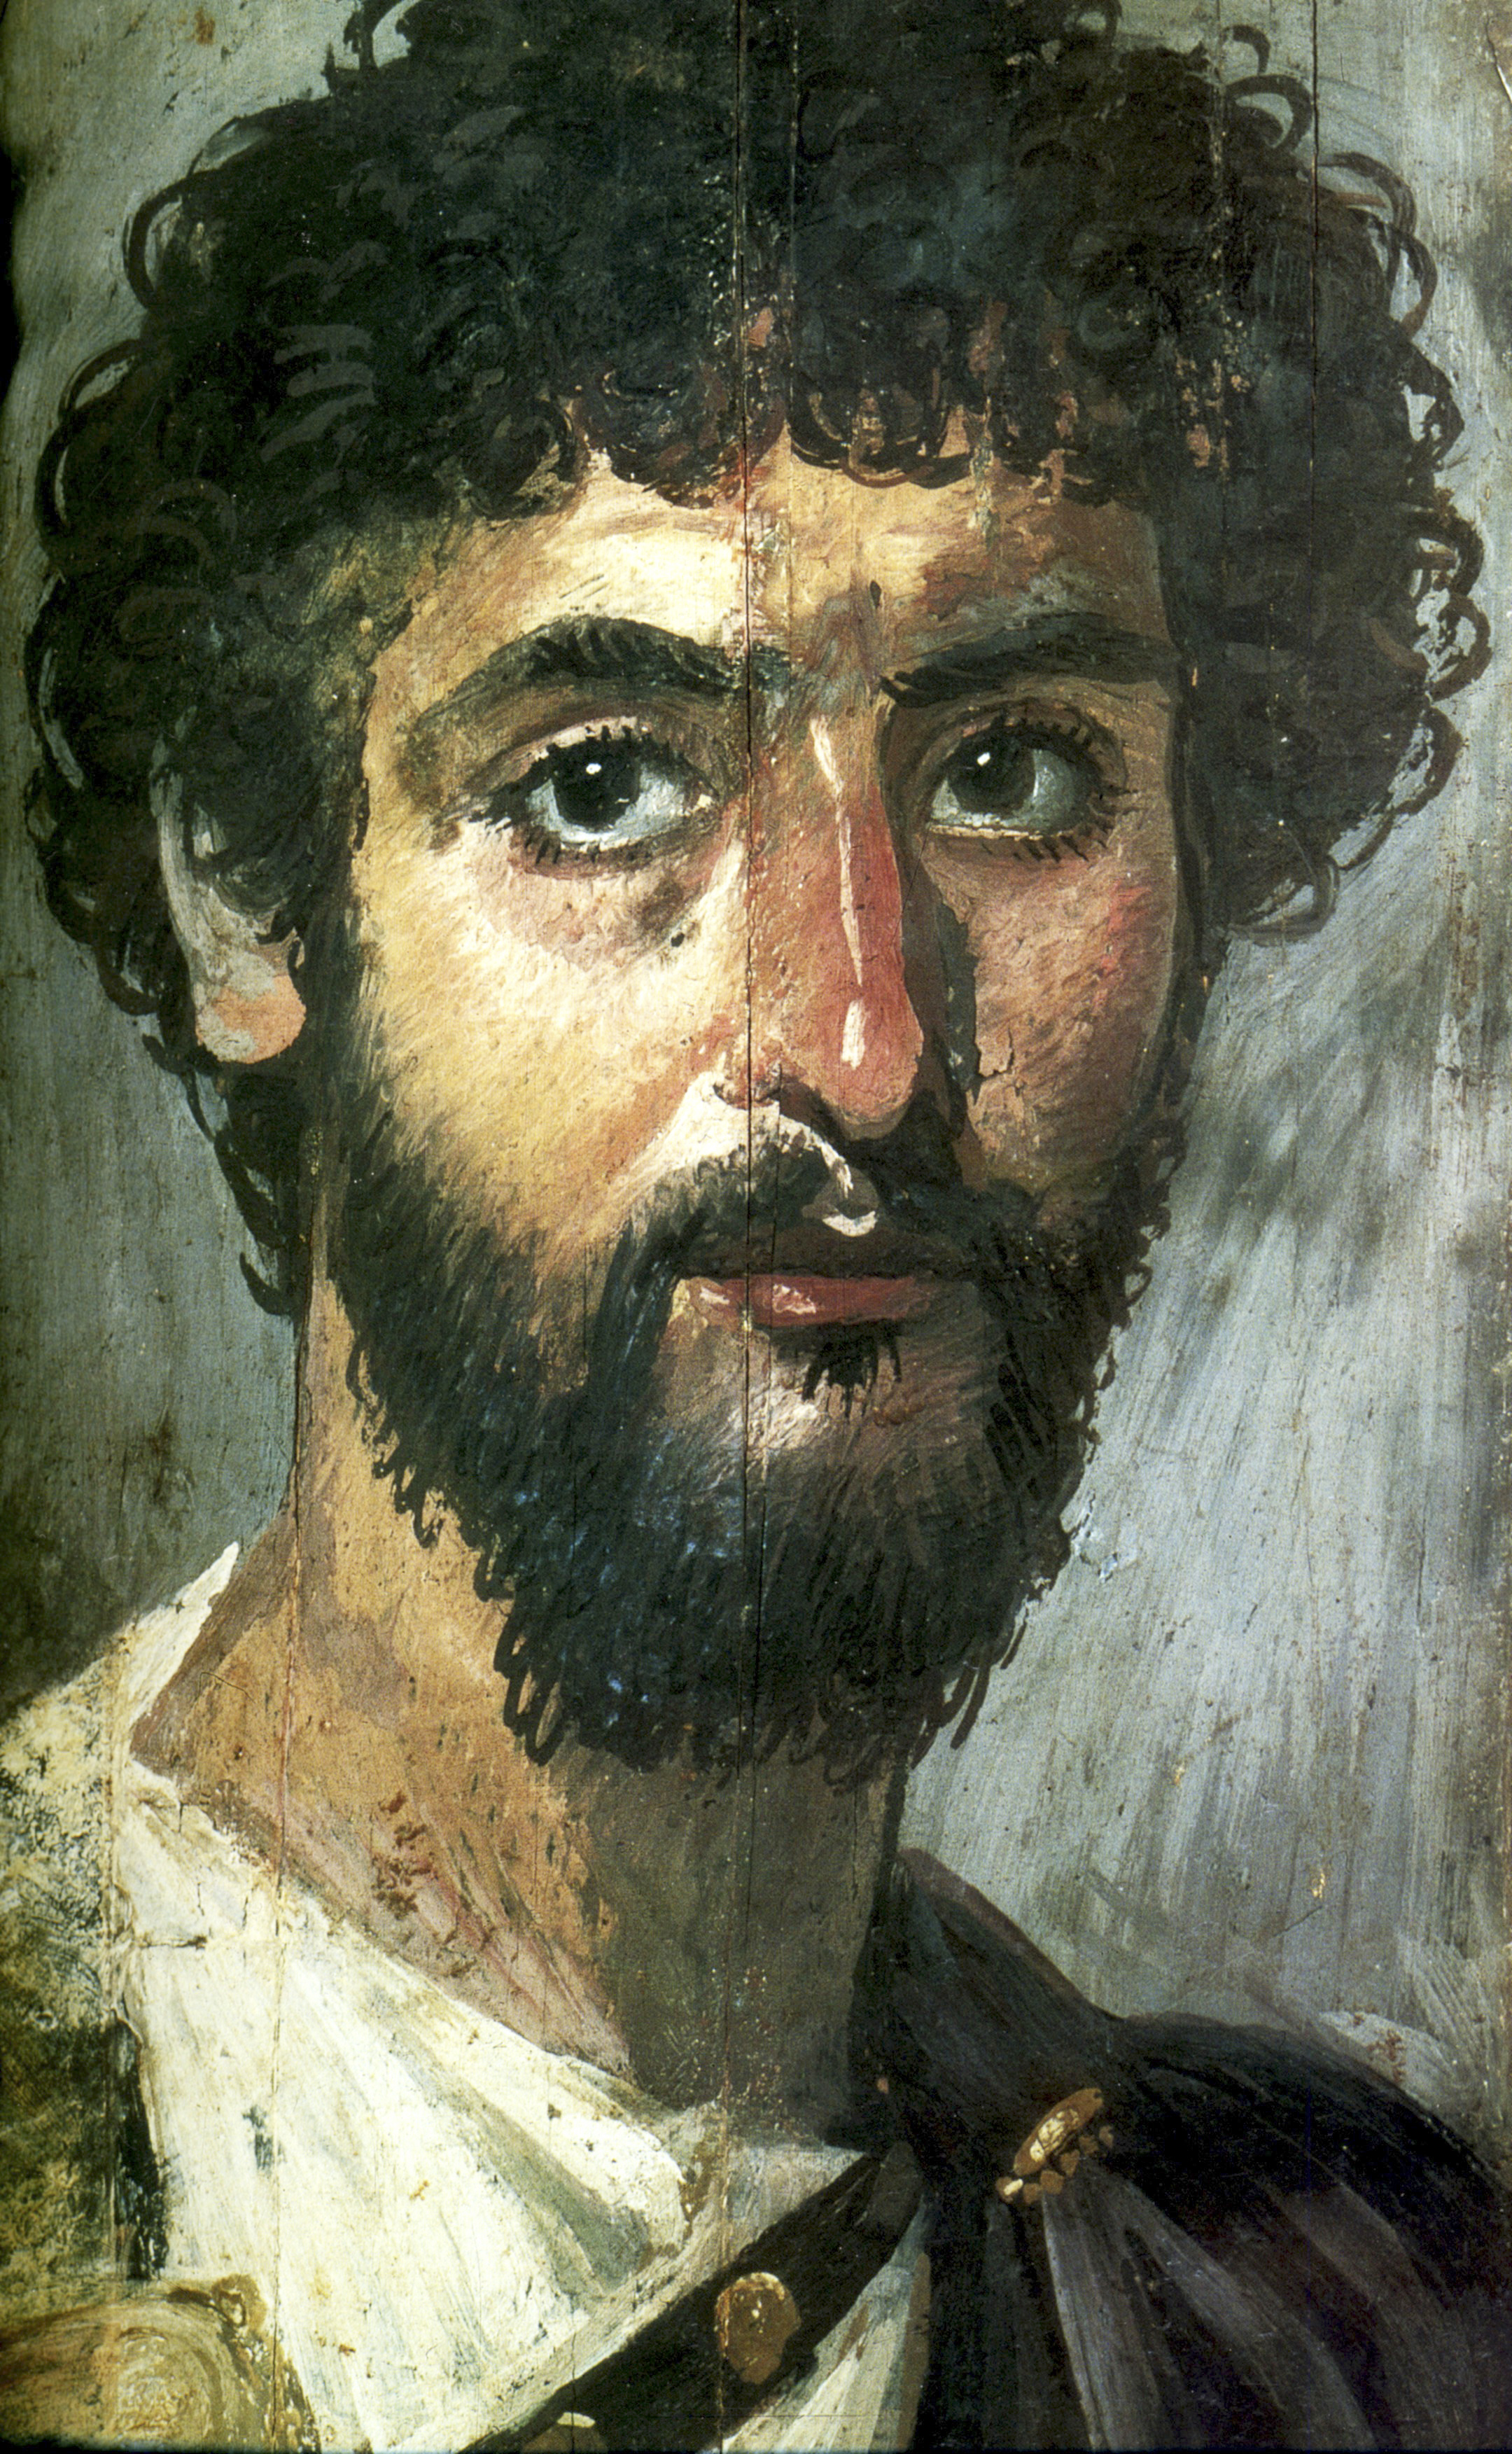 Fayum Portraits, who do they resemble the most?